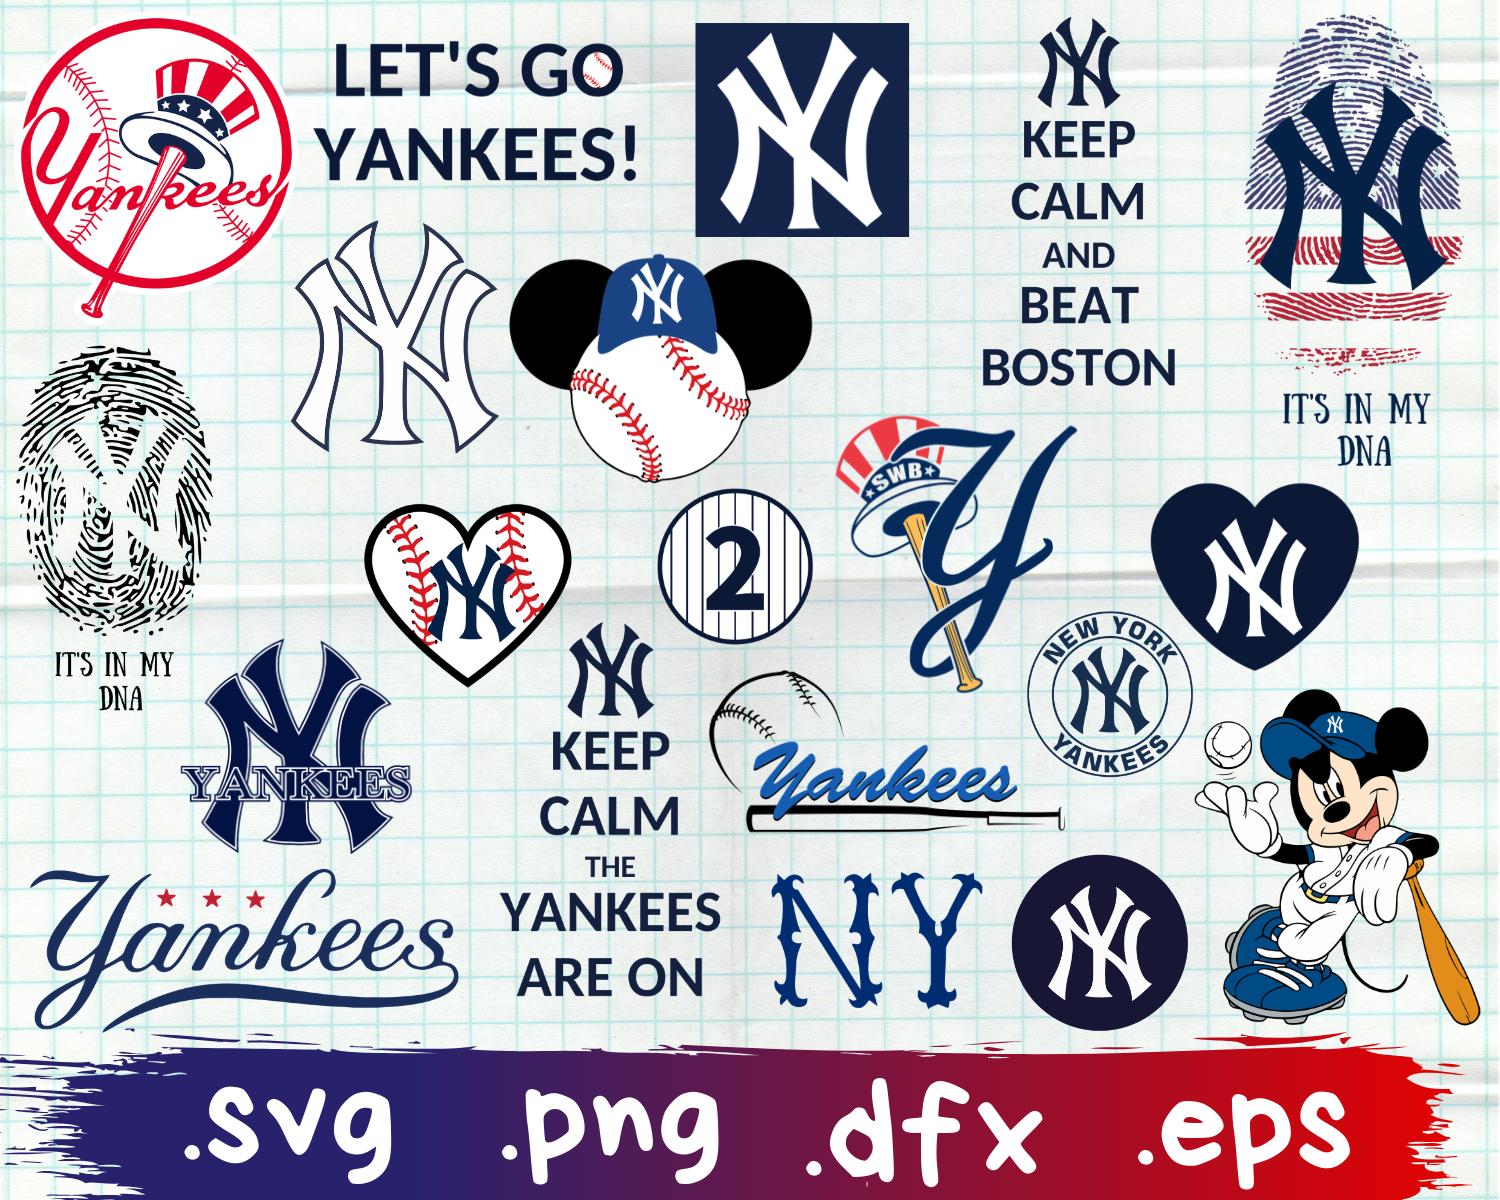 Premier League Yankees New York Yankees Logo New York Yankees Room Mariano Rivera New York Yankees New In 2020 New York Yankees Logo Yankees Logo New York Yankees